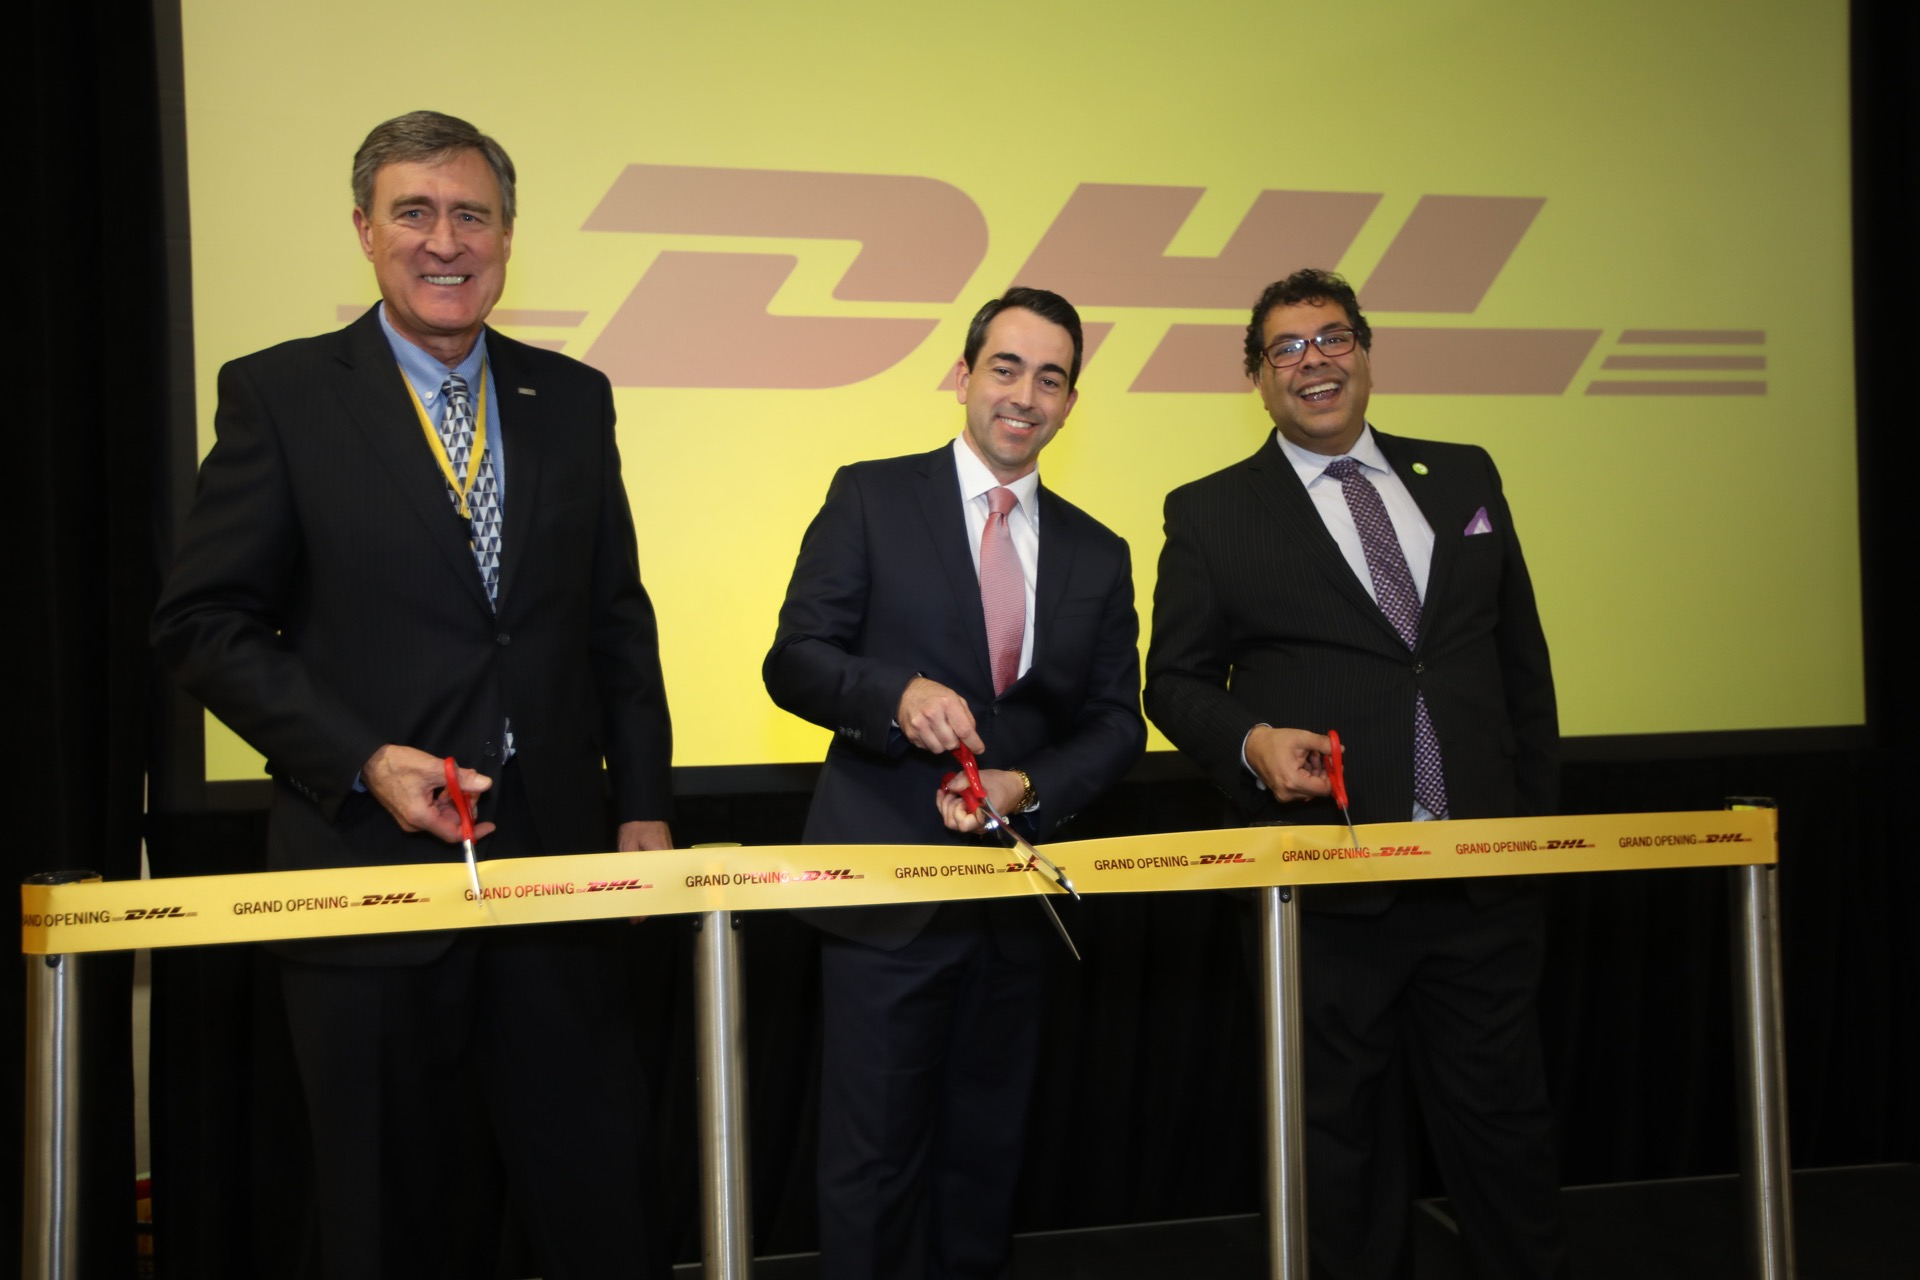 Pictured: Mel Belich, Calgary Airport Authority Board Chair (L) and His Worship Calgary Mayor Naheed Nenshi (R) join Andrew Williams, CEO of DHL Express Canada, in officially opening DHL's expanded cargo facilities at YYC Calgary International Airport.